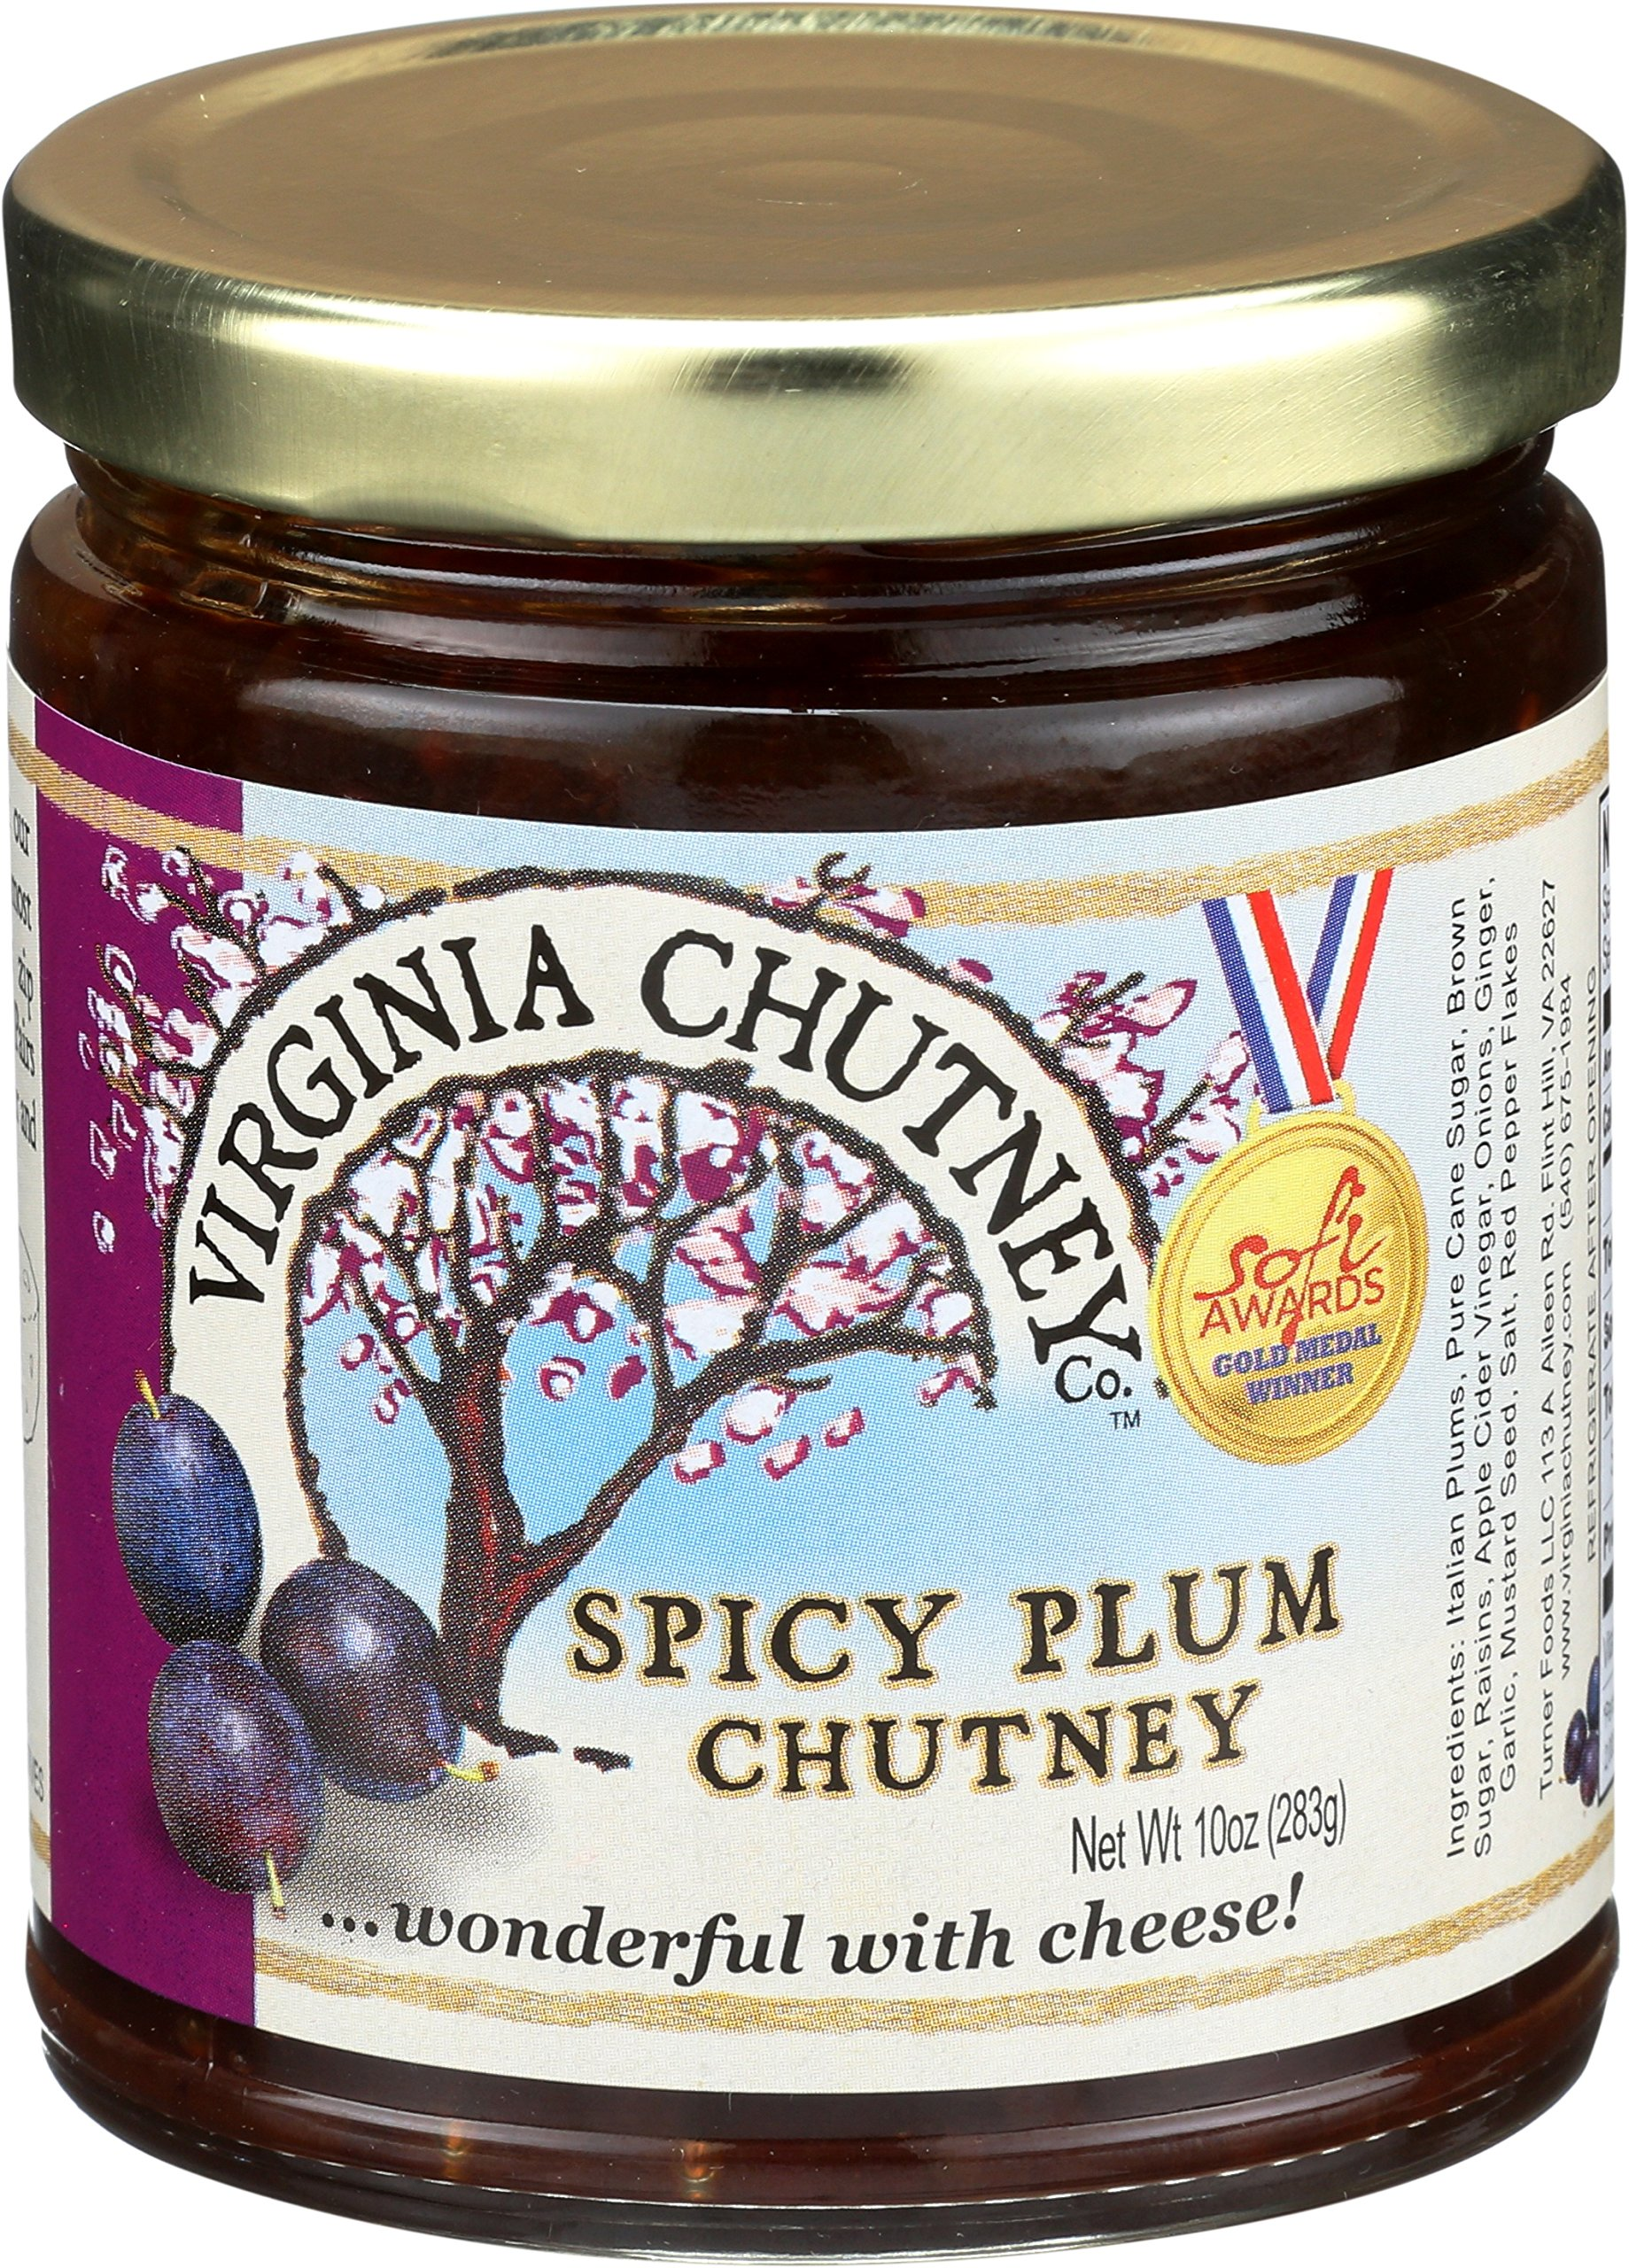 Plum Chutney- 2 PACK The Virginia Chutney Co. Spicy Plum Chutney - All Natural relish & Spread for hot & cold meat, fish, cheese and sandwiches by Virginia Chutney Company